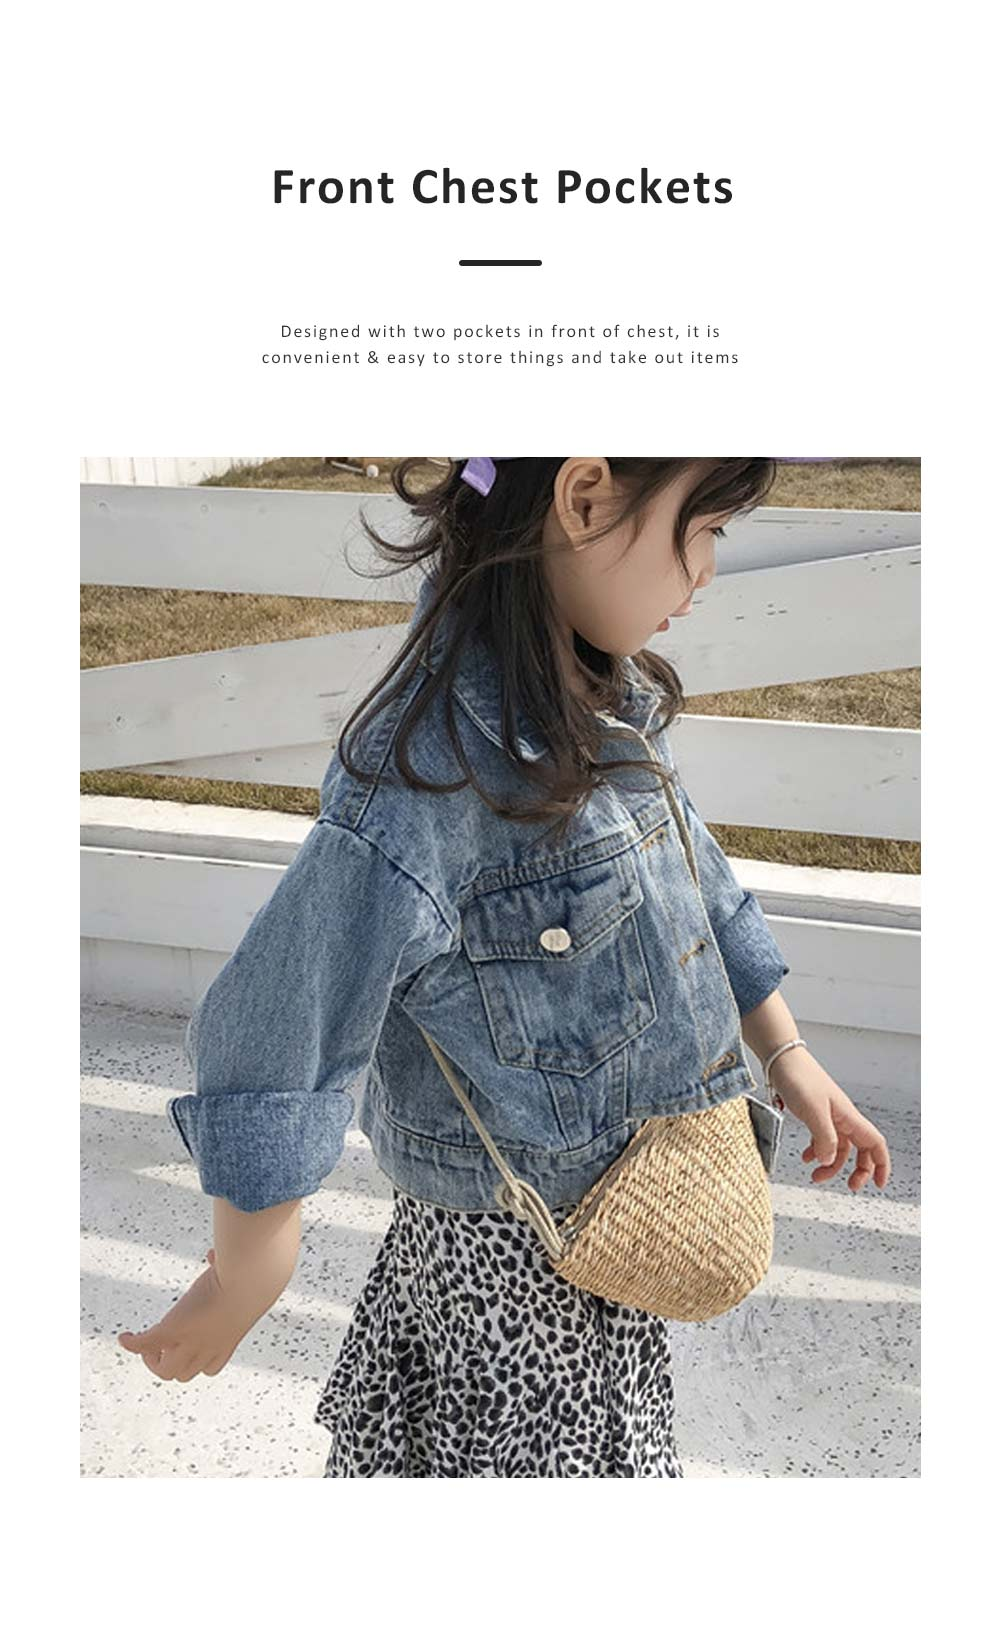 Classic style Denim Jacket Long Sleeve Clothes Fashionable Children Garment with Two Pockets for Girls 3